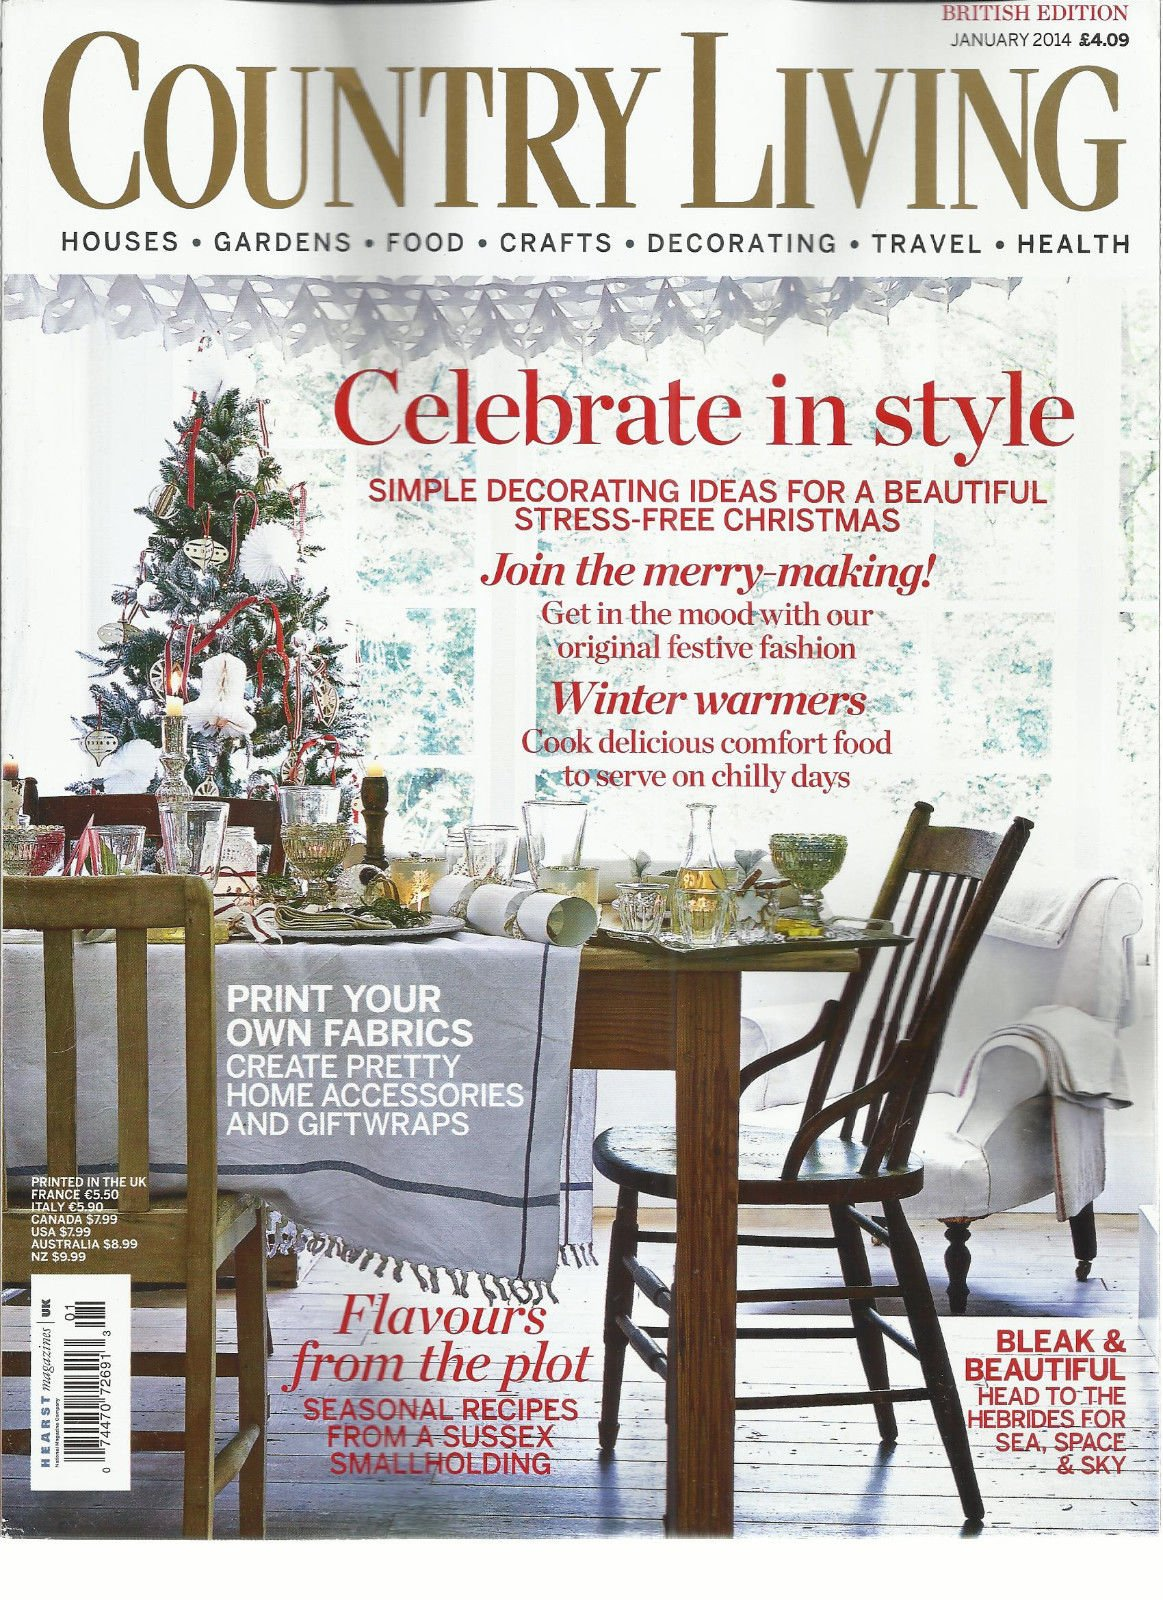 COUNTRY LIVING, JANUARY, 2014 (CELEBRATE IN STYLE * FLAVOURS FROM THE PLOT)